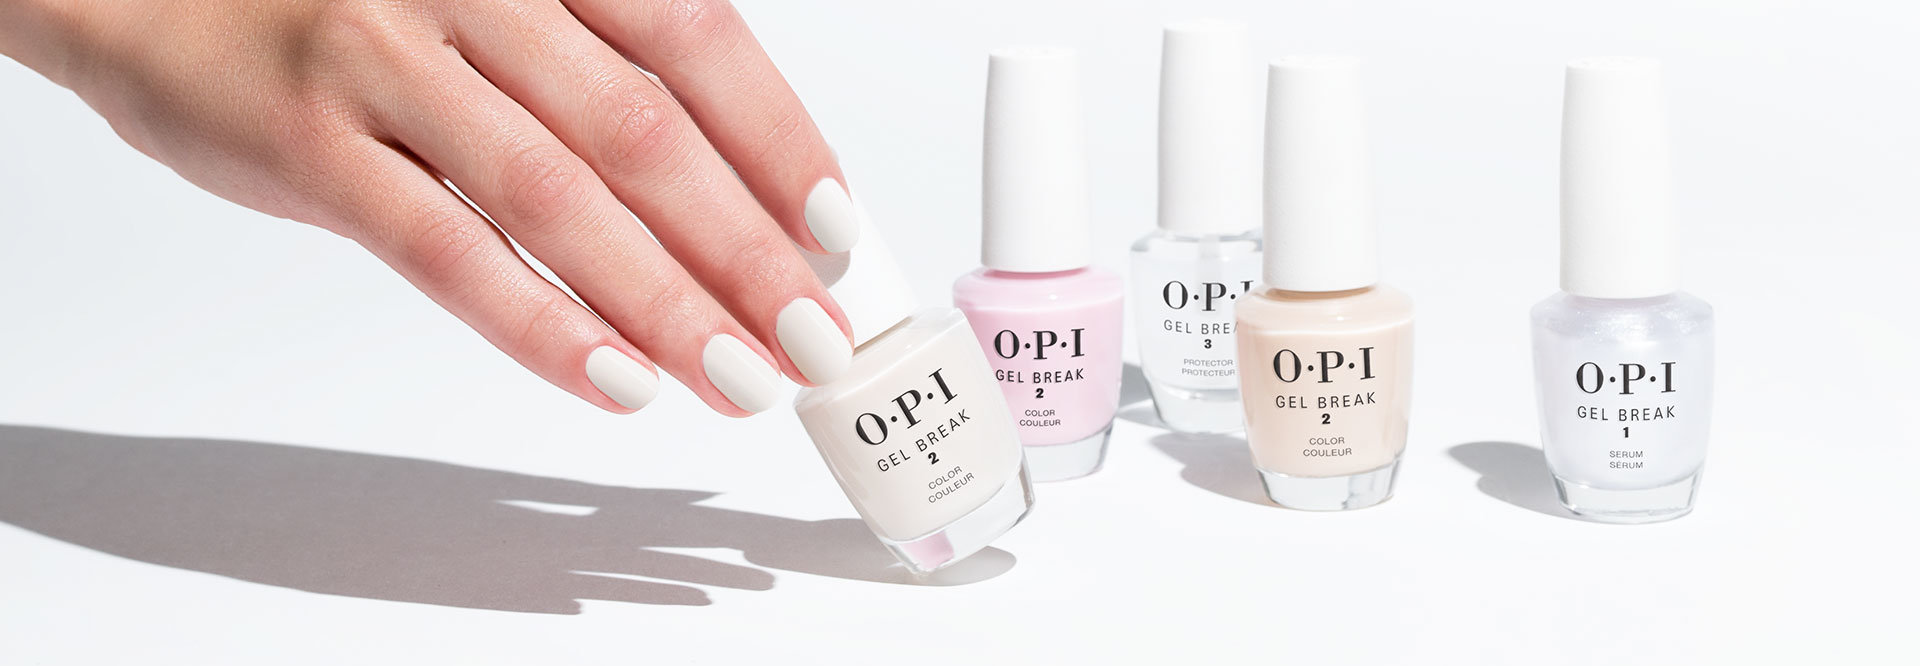 Nail treatments strengtheners opi nail treatments strengtheners solutioingenieria Image collections